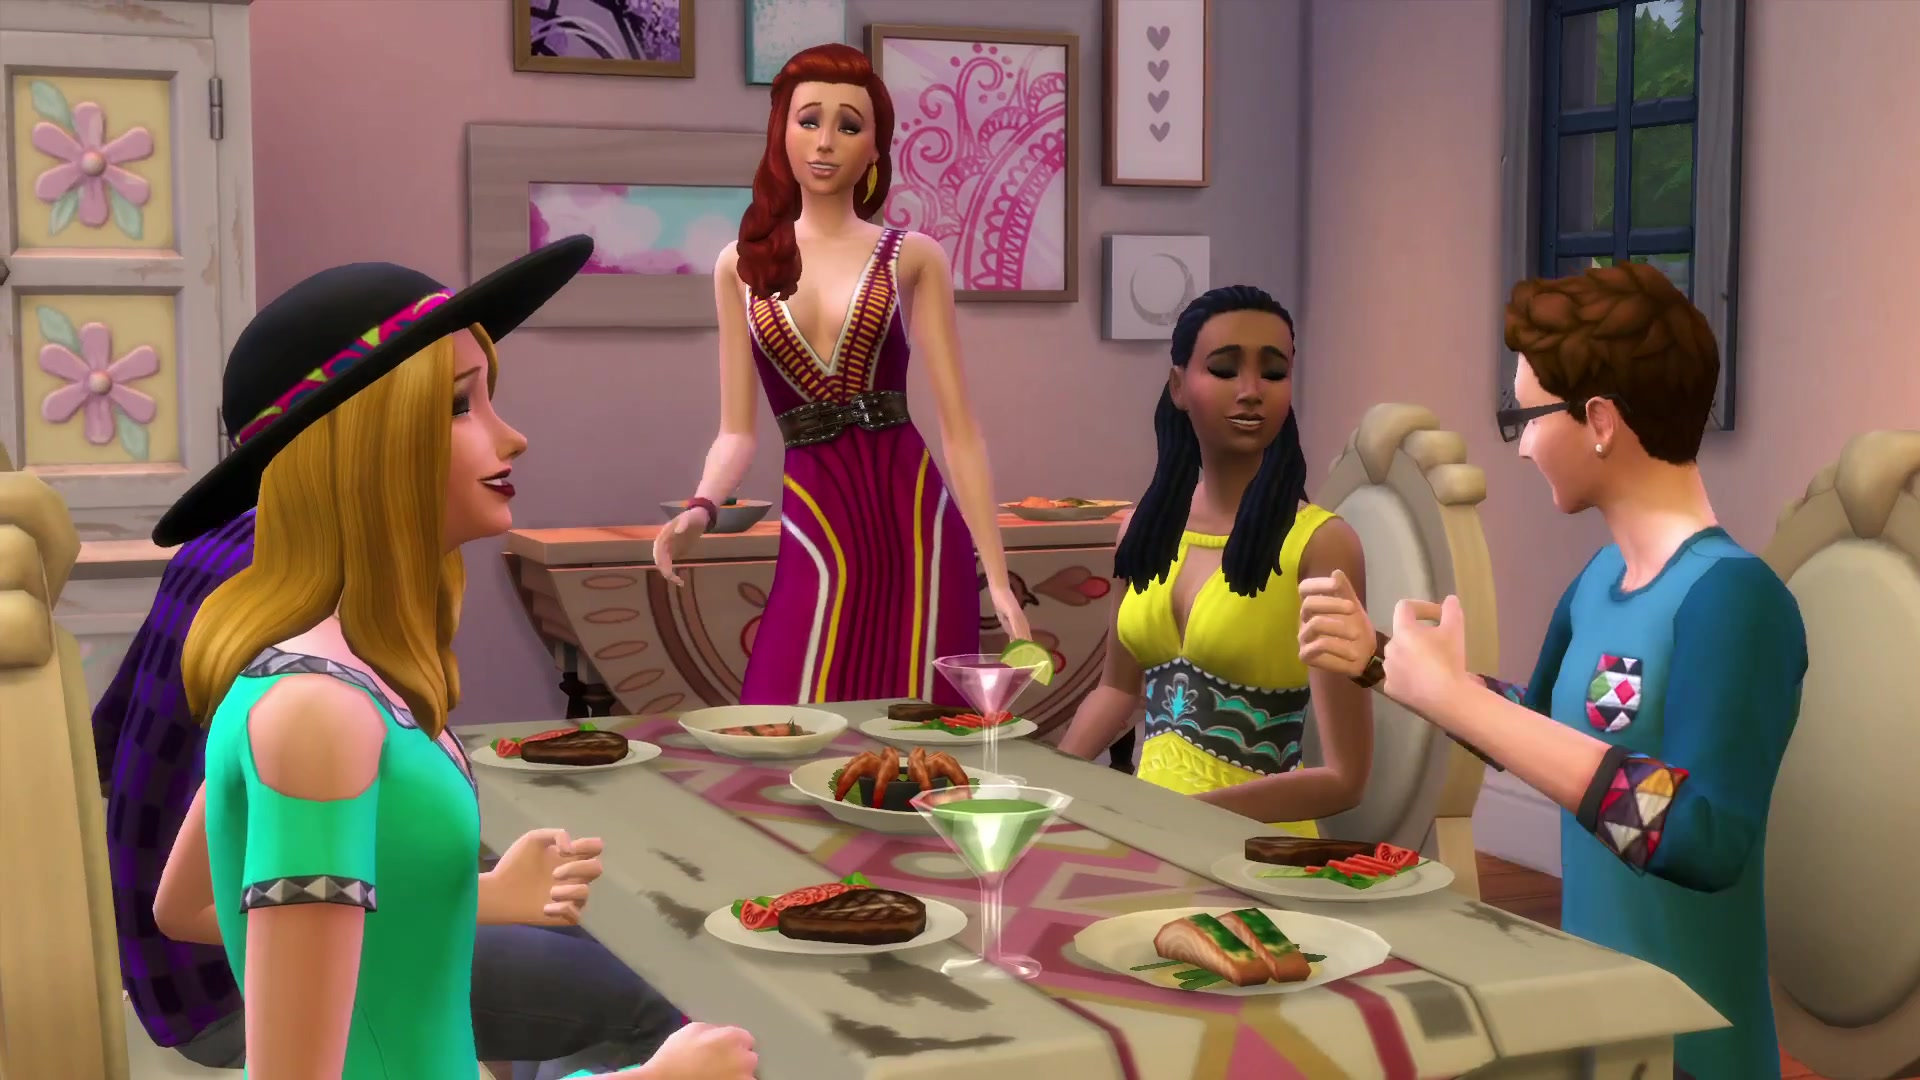 sims 4 how to move a sim out